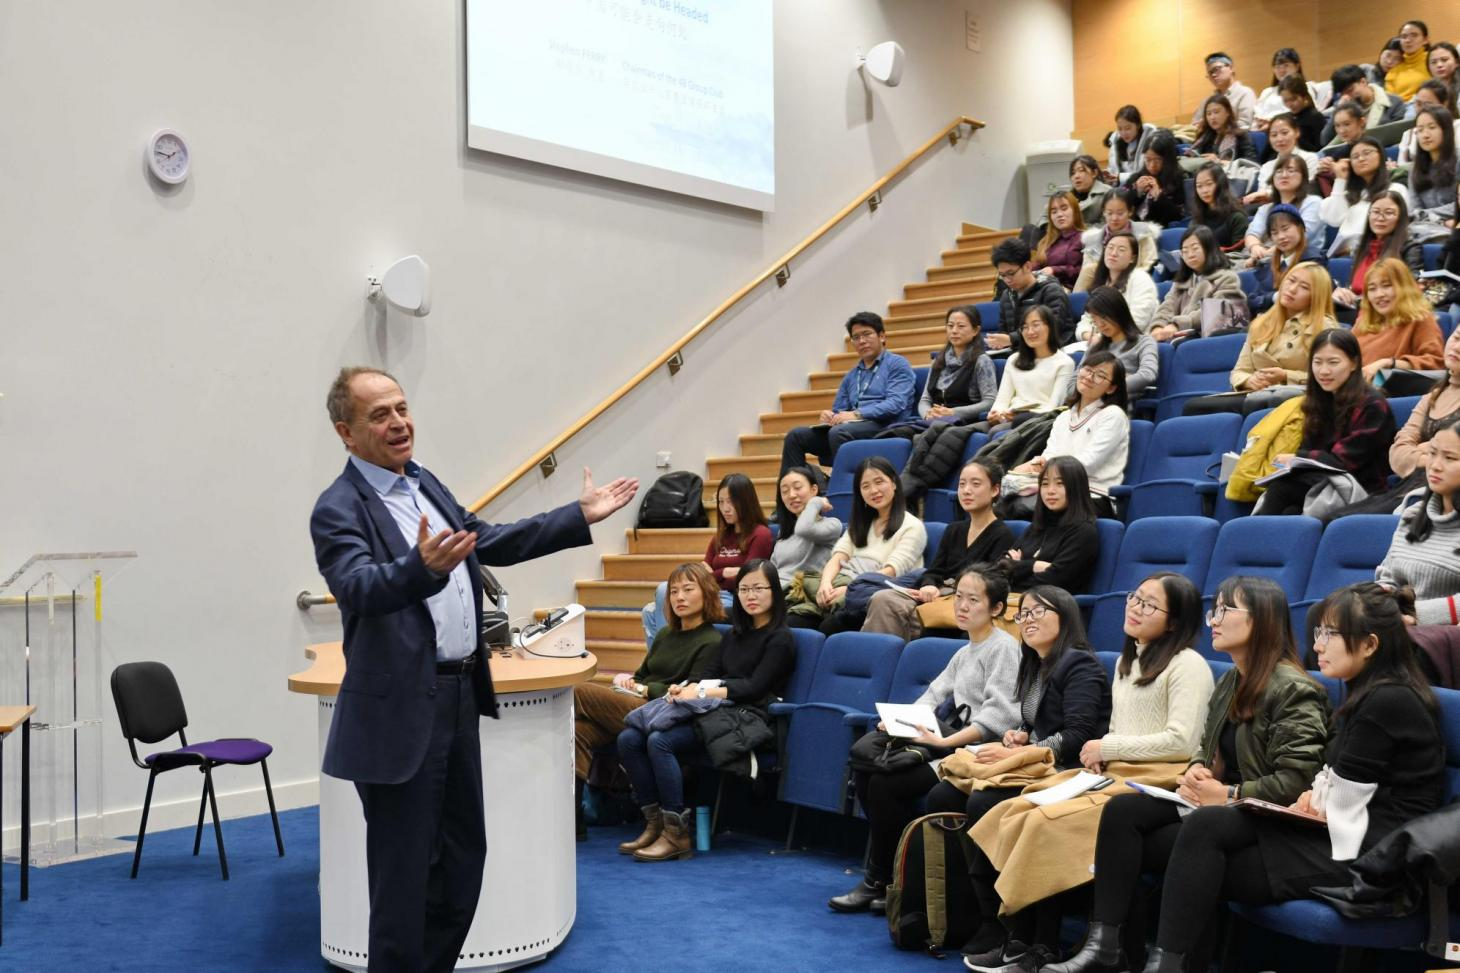 lecture given by Stephen Perry about where China goes to